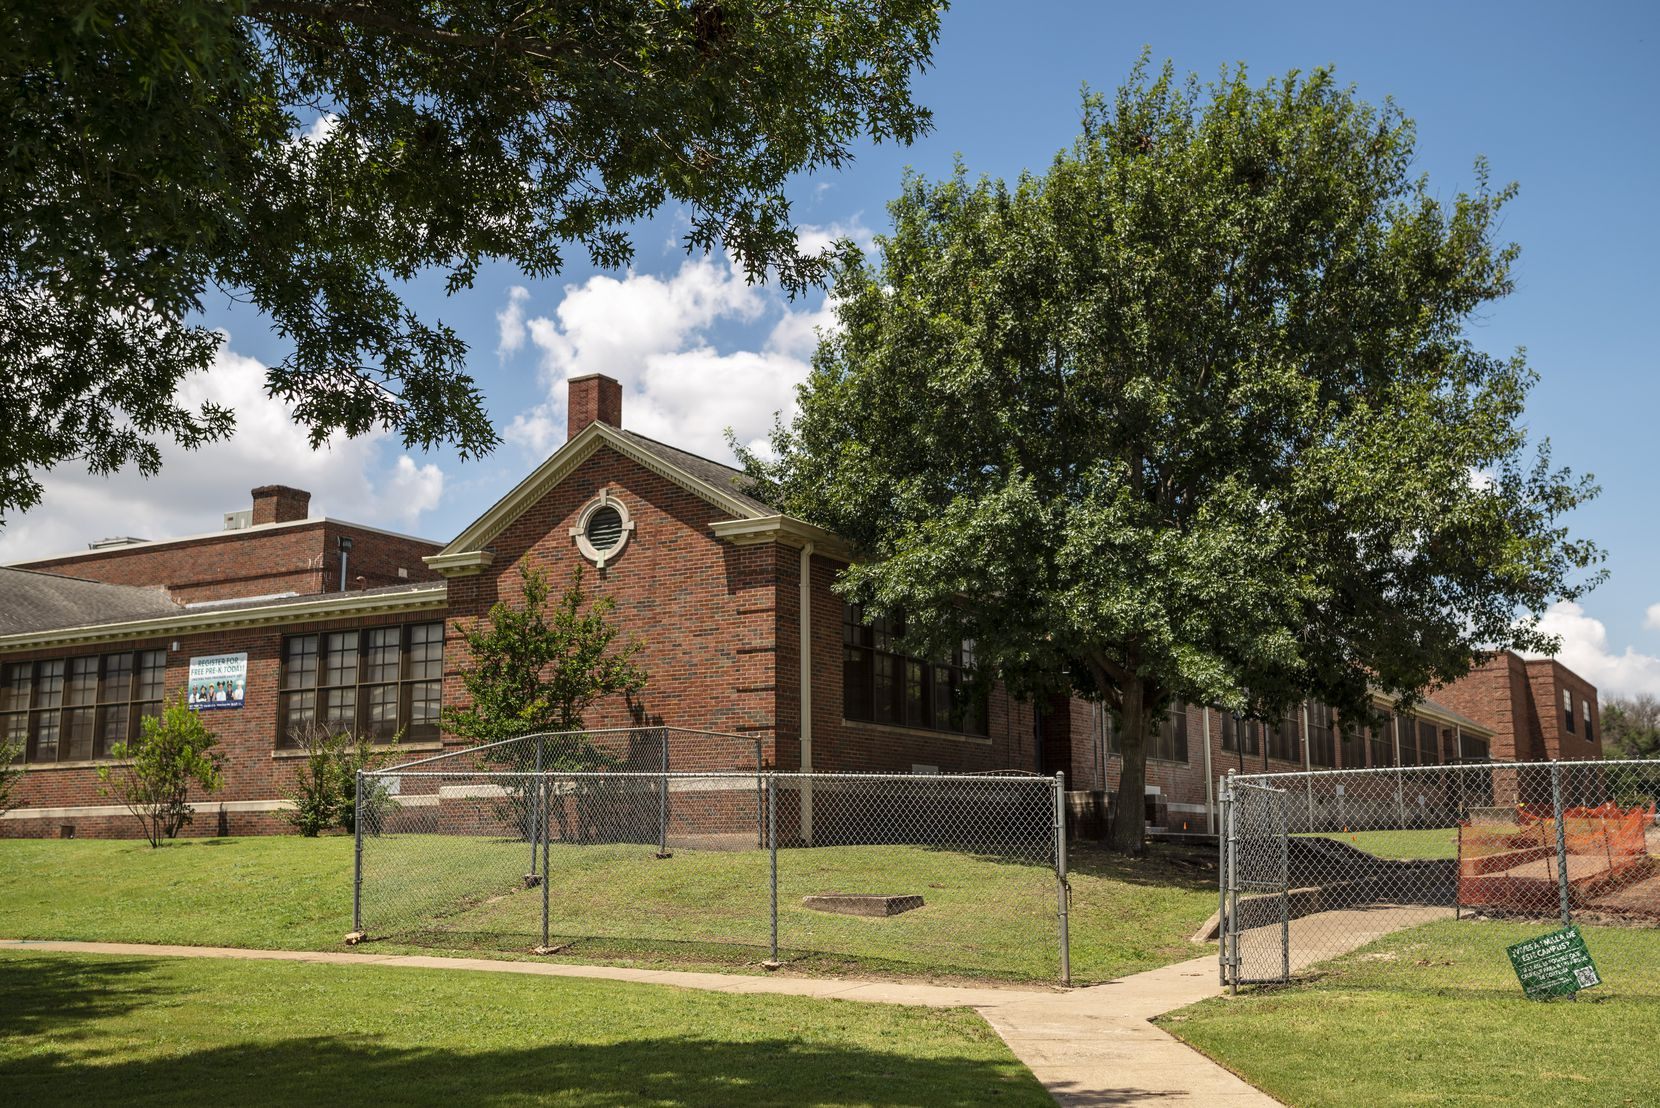 The tree that Diana C. Vargas-Martínez and her mother Marisela Vargas planted in 1992 outside of Leila P. Cowart Elementary in Dallas, photographed on Thursday, July 01, 2021.